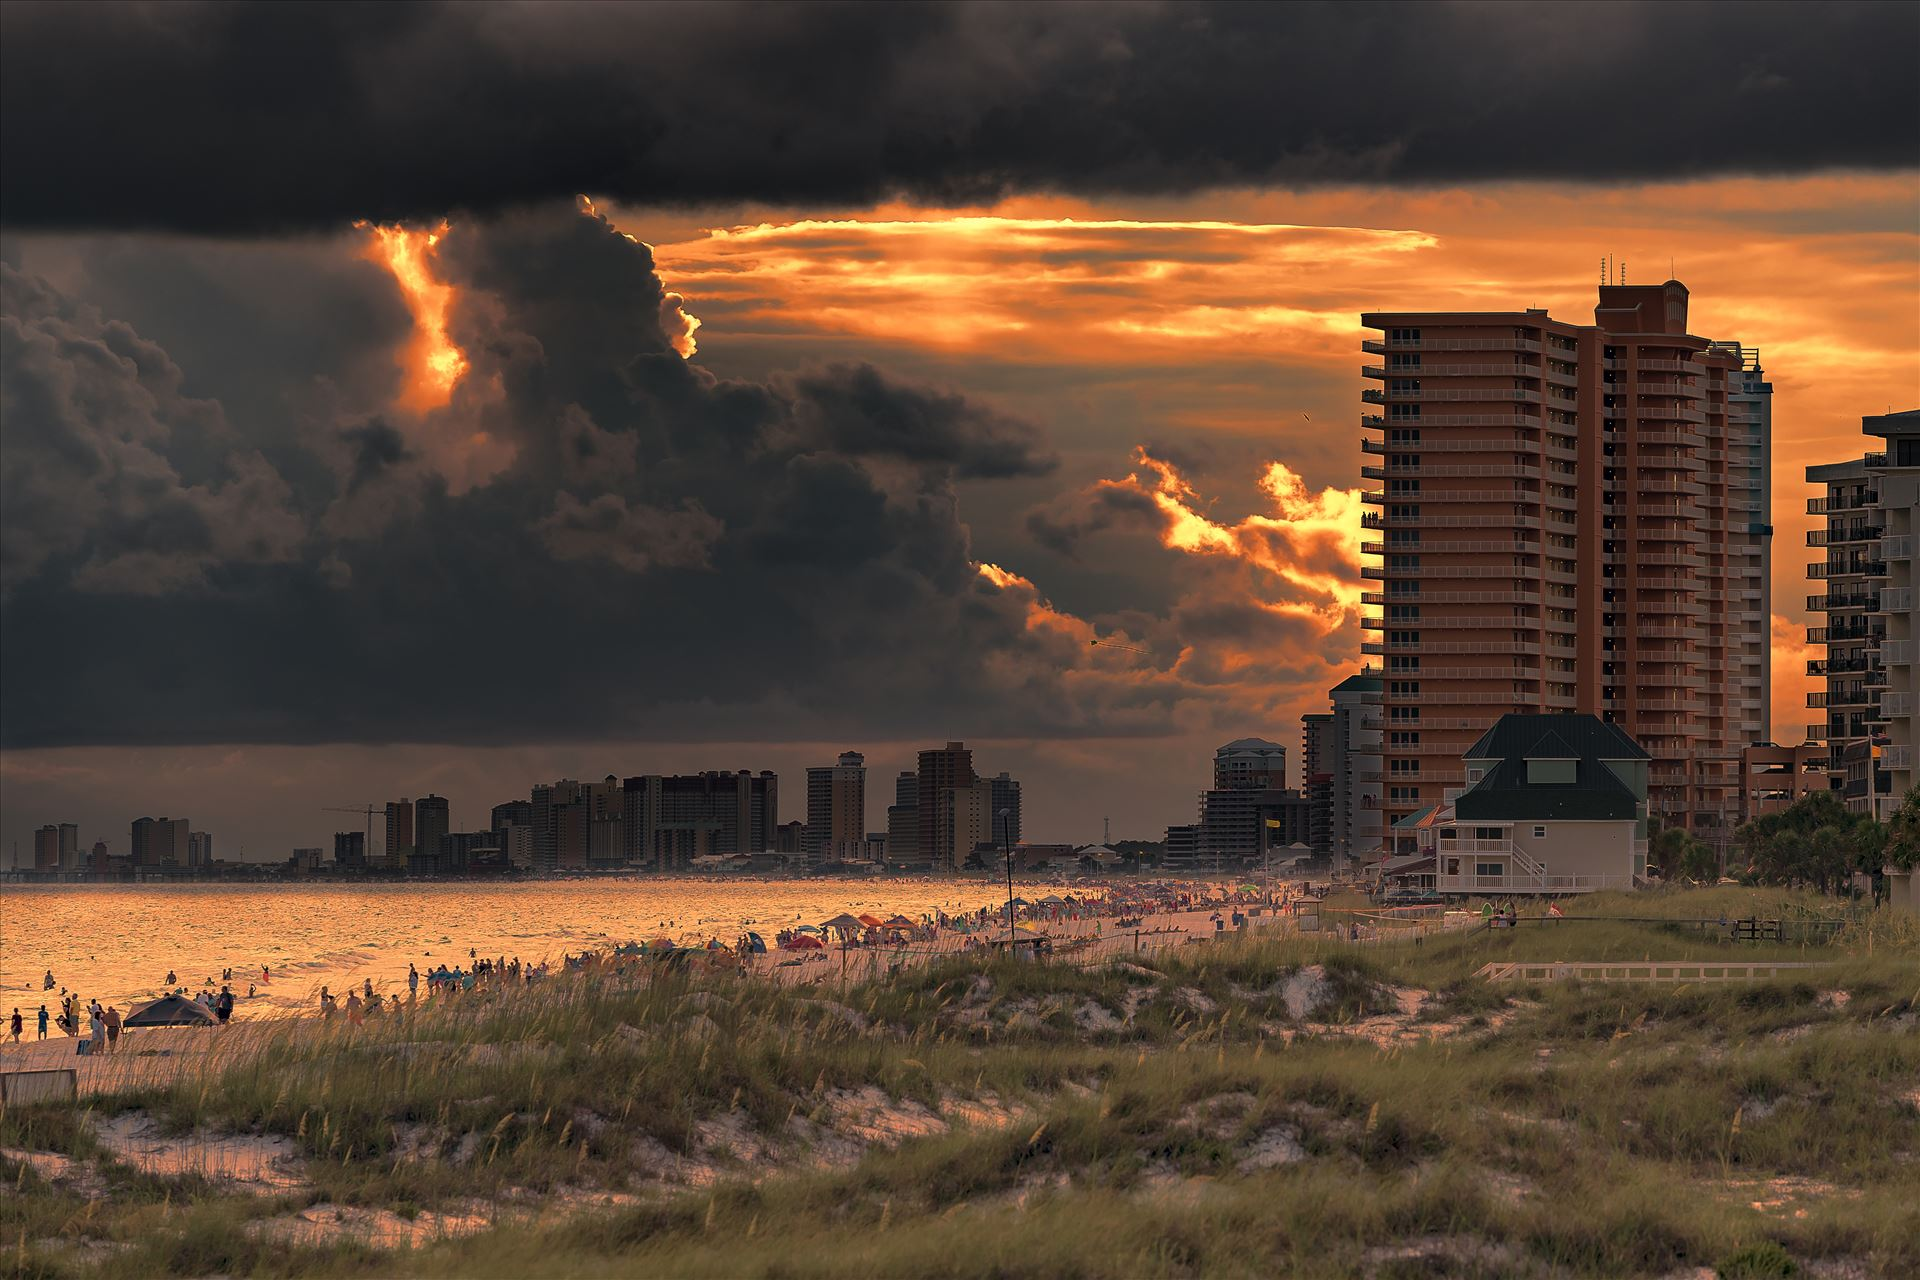 Stormy sunset thomas drive area of panama city beach florida 8500414.jpg Stormy sunset along the beaches of Thomas Drive Panama City, Beach Florida. Photo taken from the pier at St. Andrews State Park. by Terry Kelly Photography